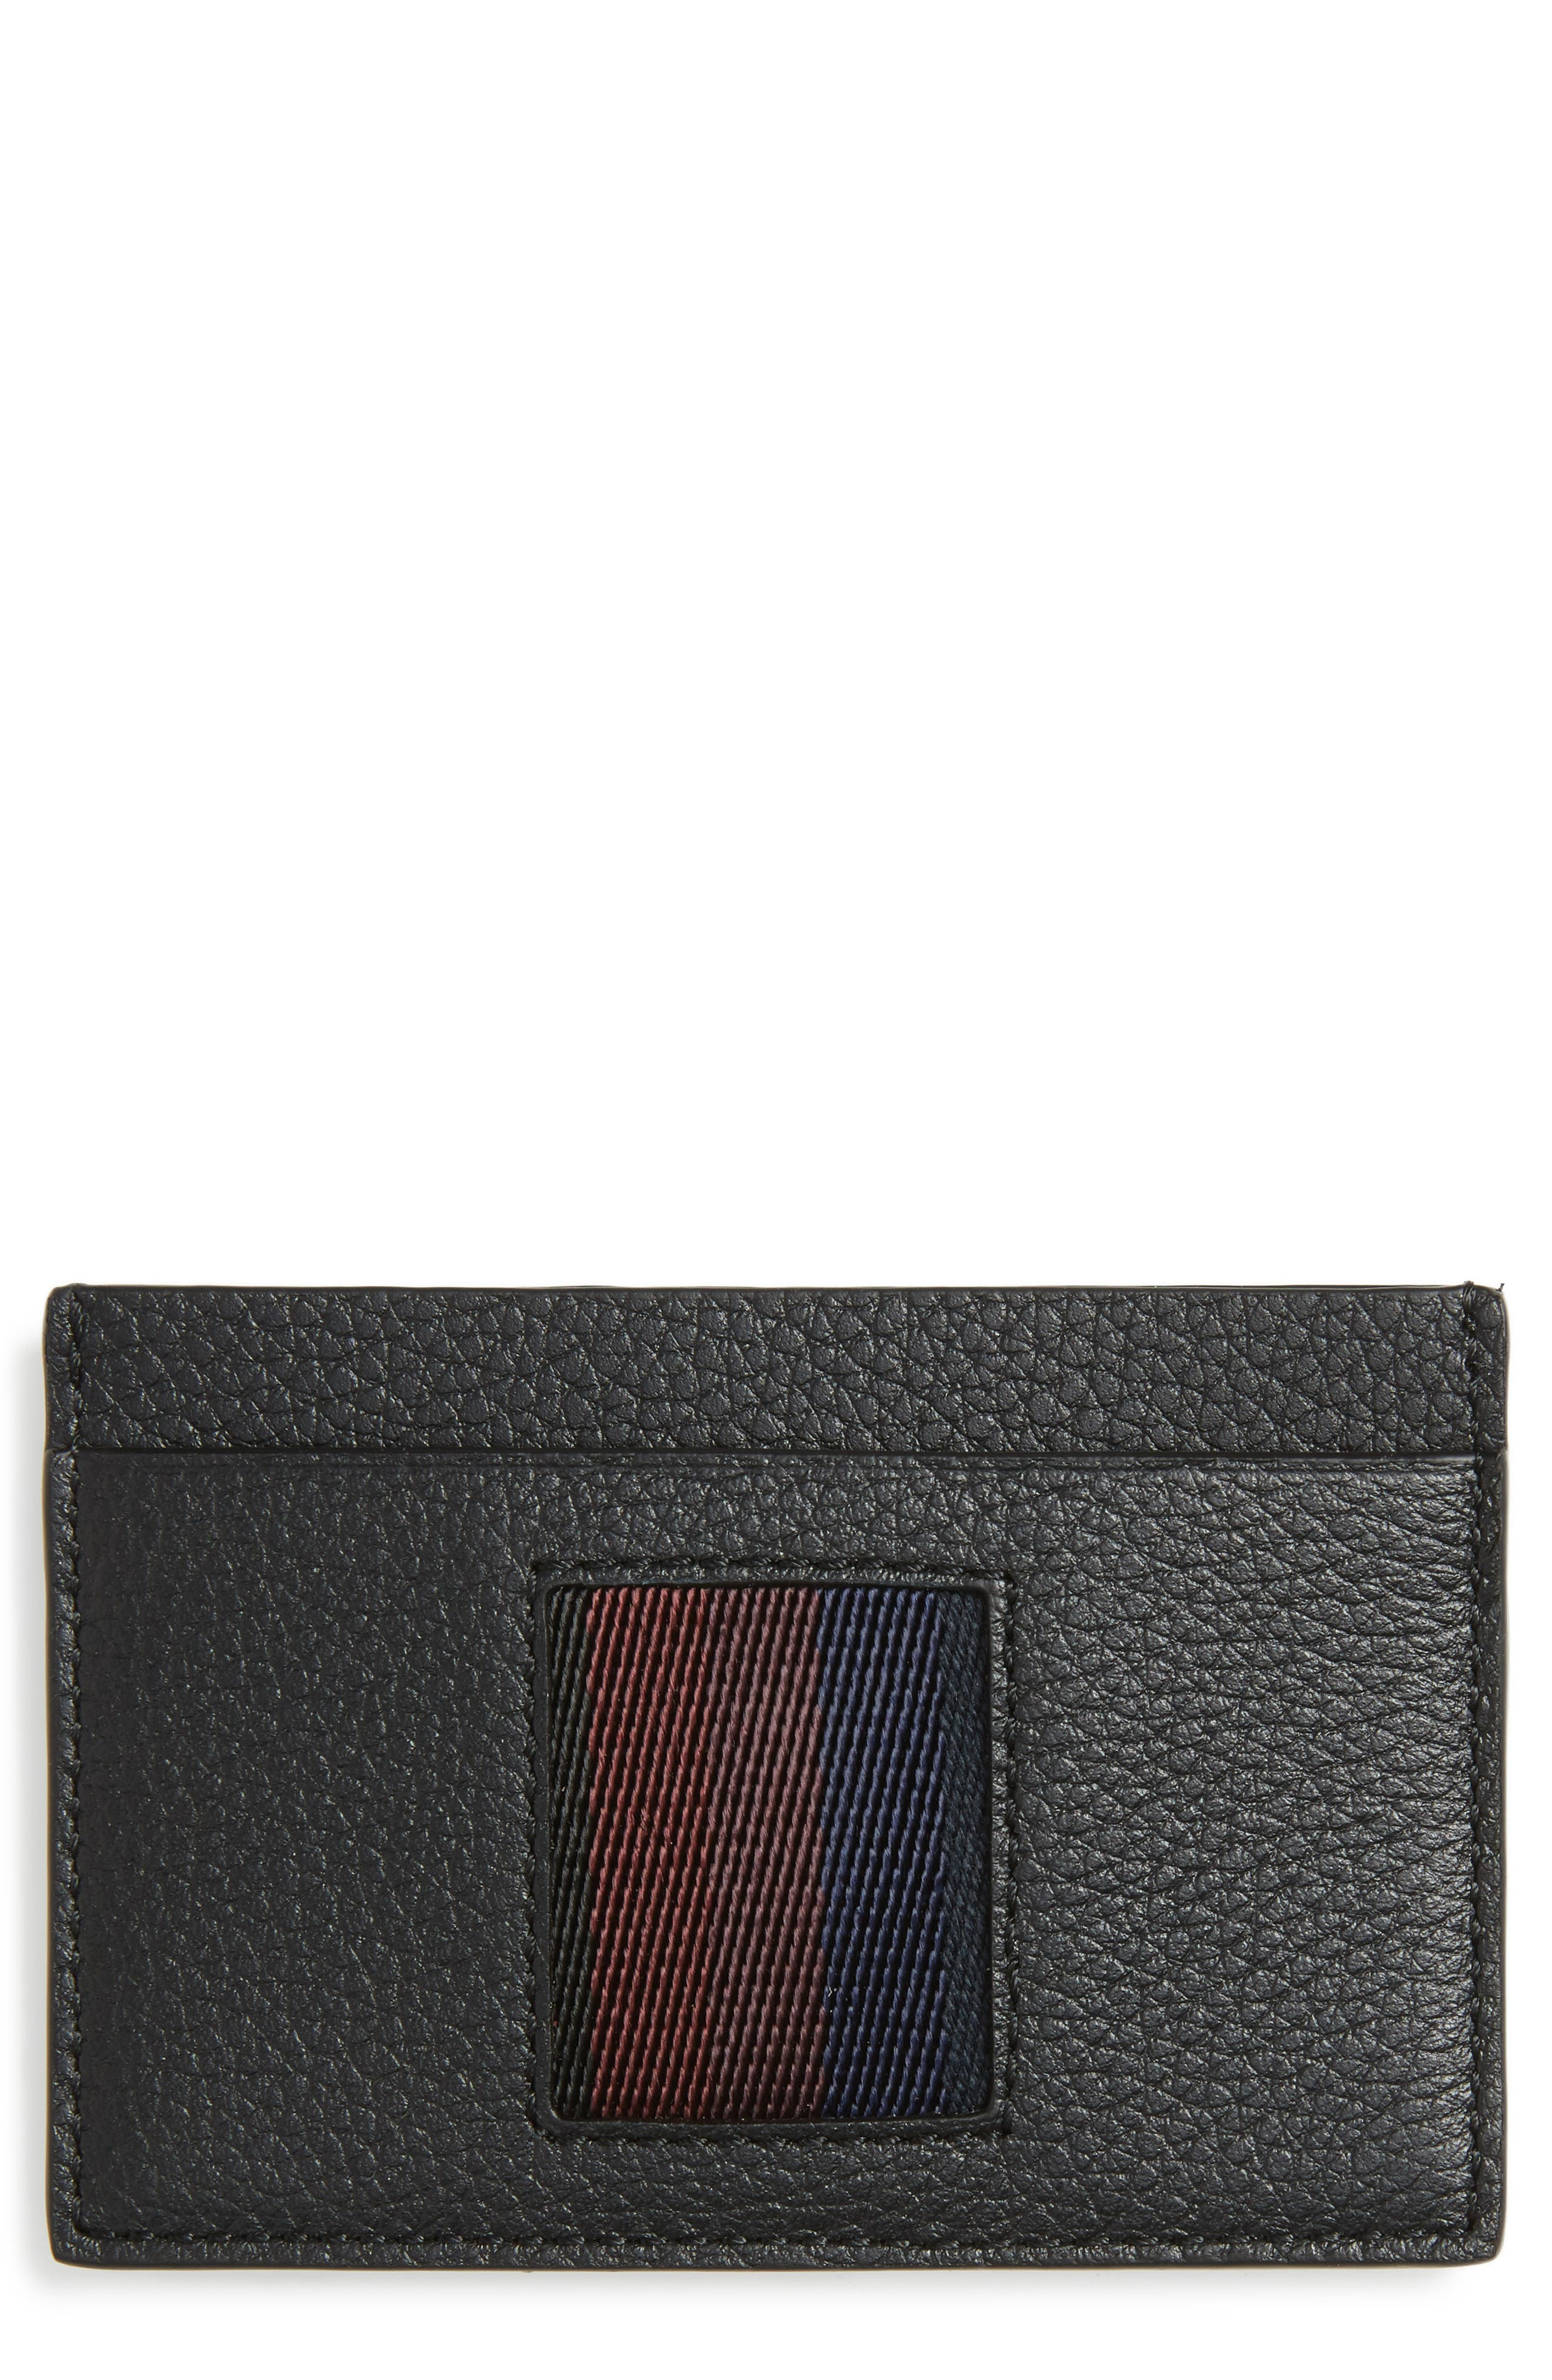 Alternate Image 1 Selected - Paul Smith Stripe Webbing Leather Card Case